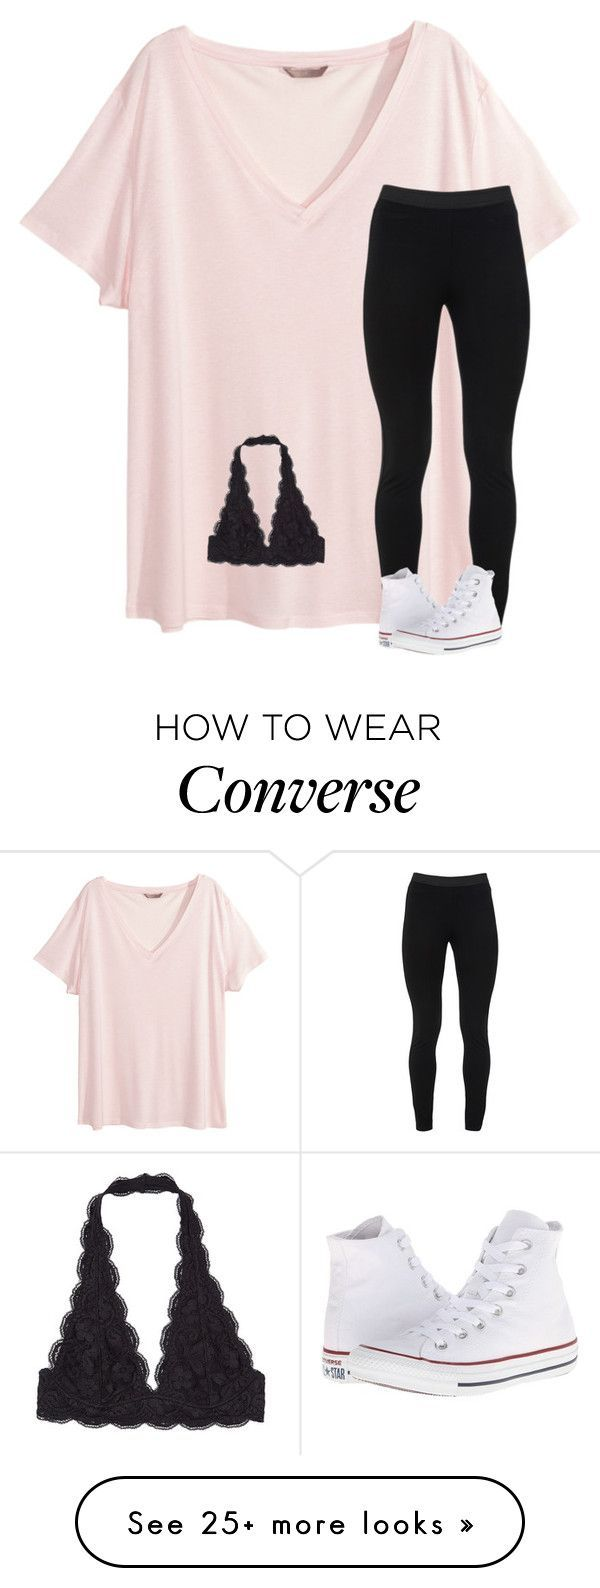 HALPY BIRTHDAY LILLY by katherinecat14 on Polyvore featuring H&M, Peace of Cloth...